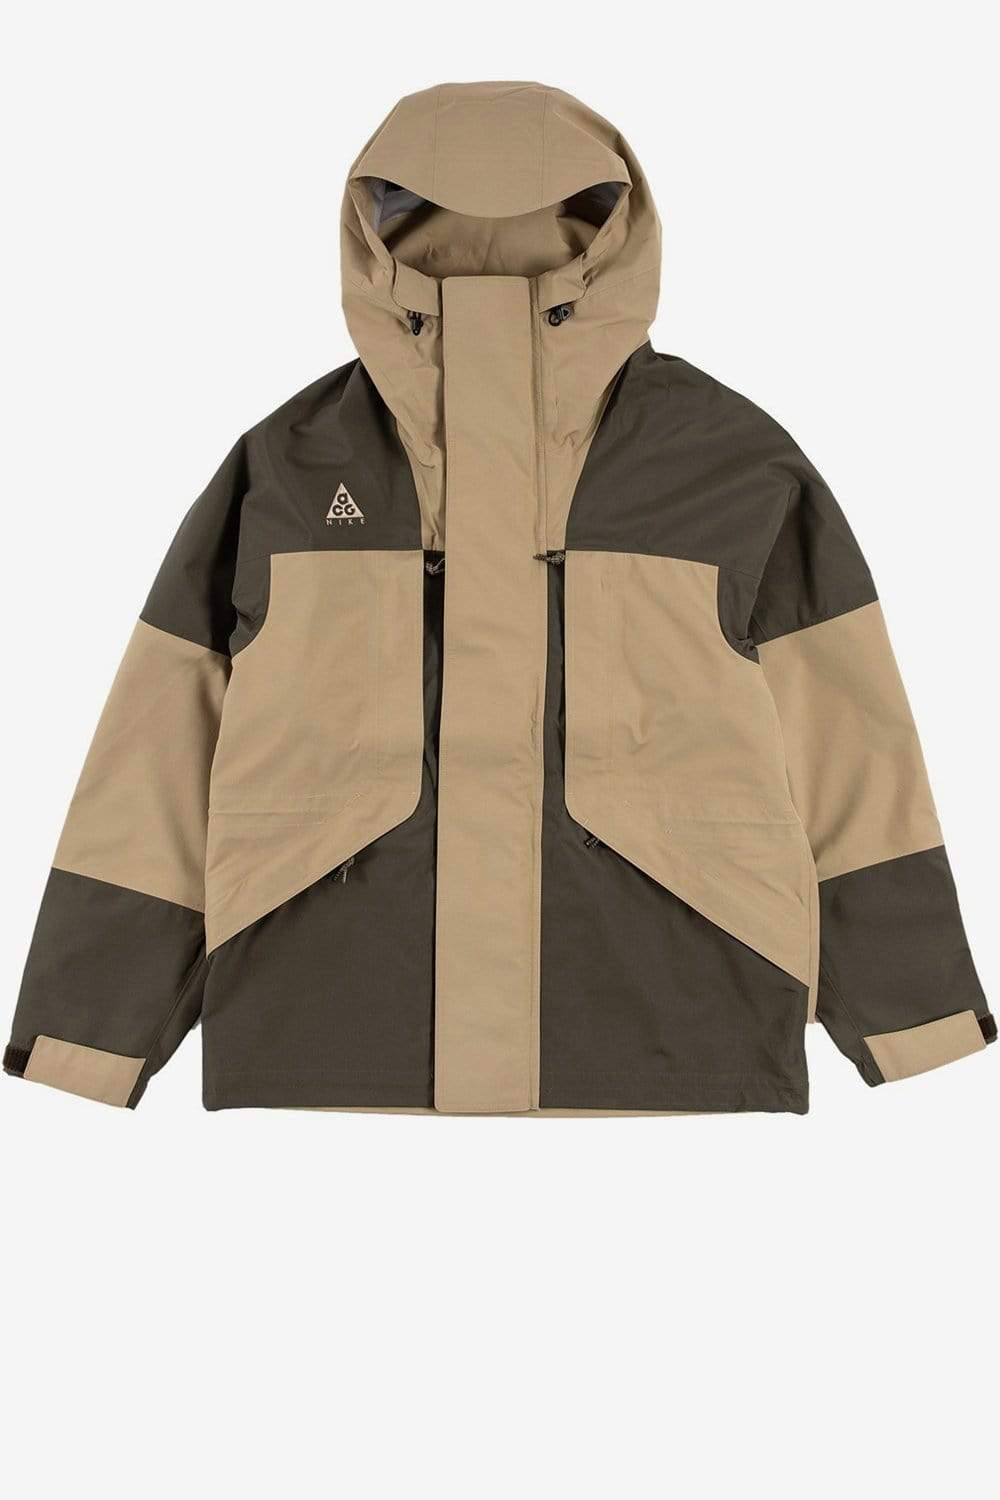 Nike Apparel ACG GORE-TEX Jacket